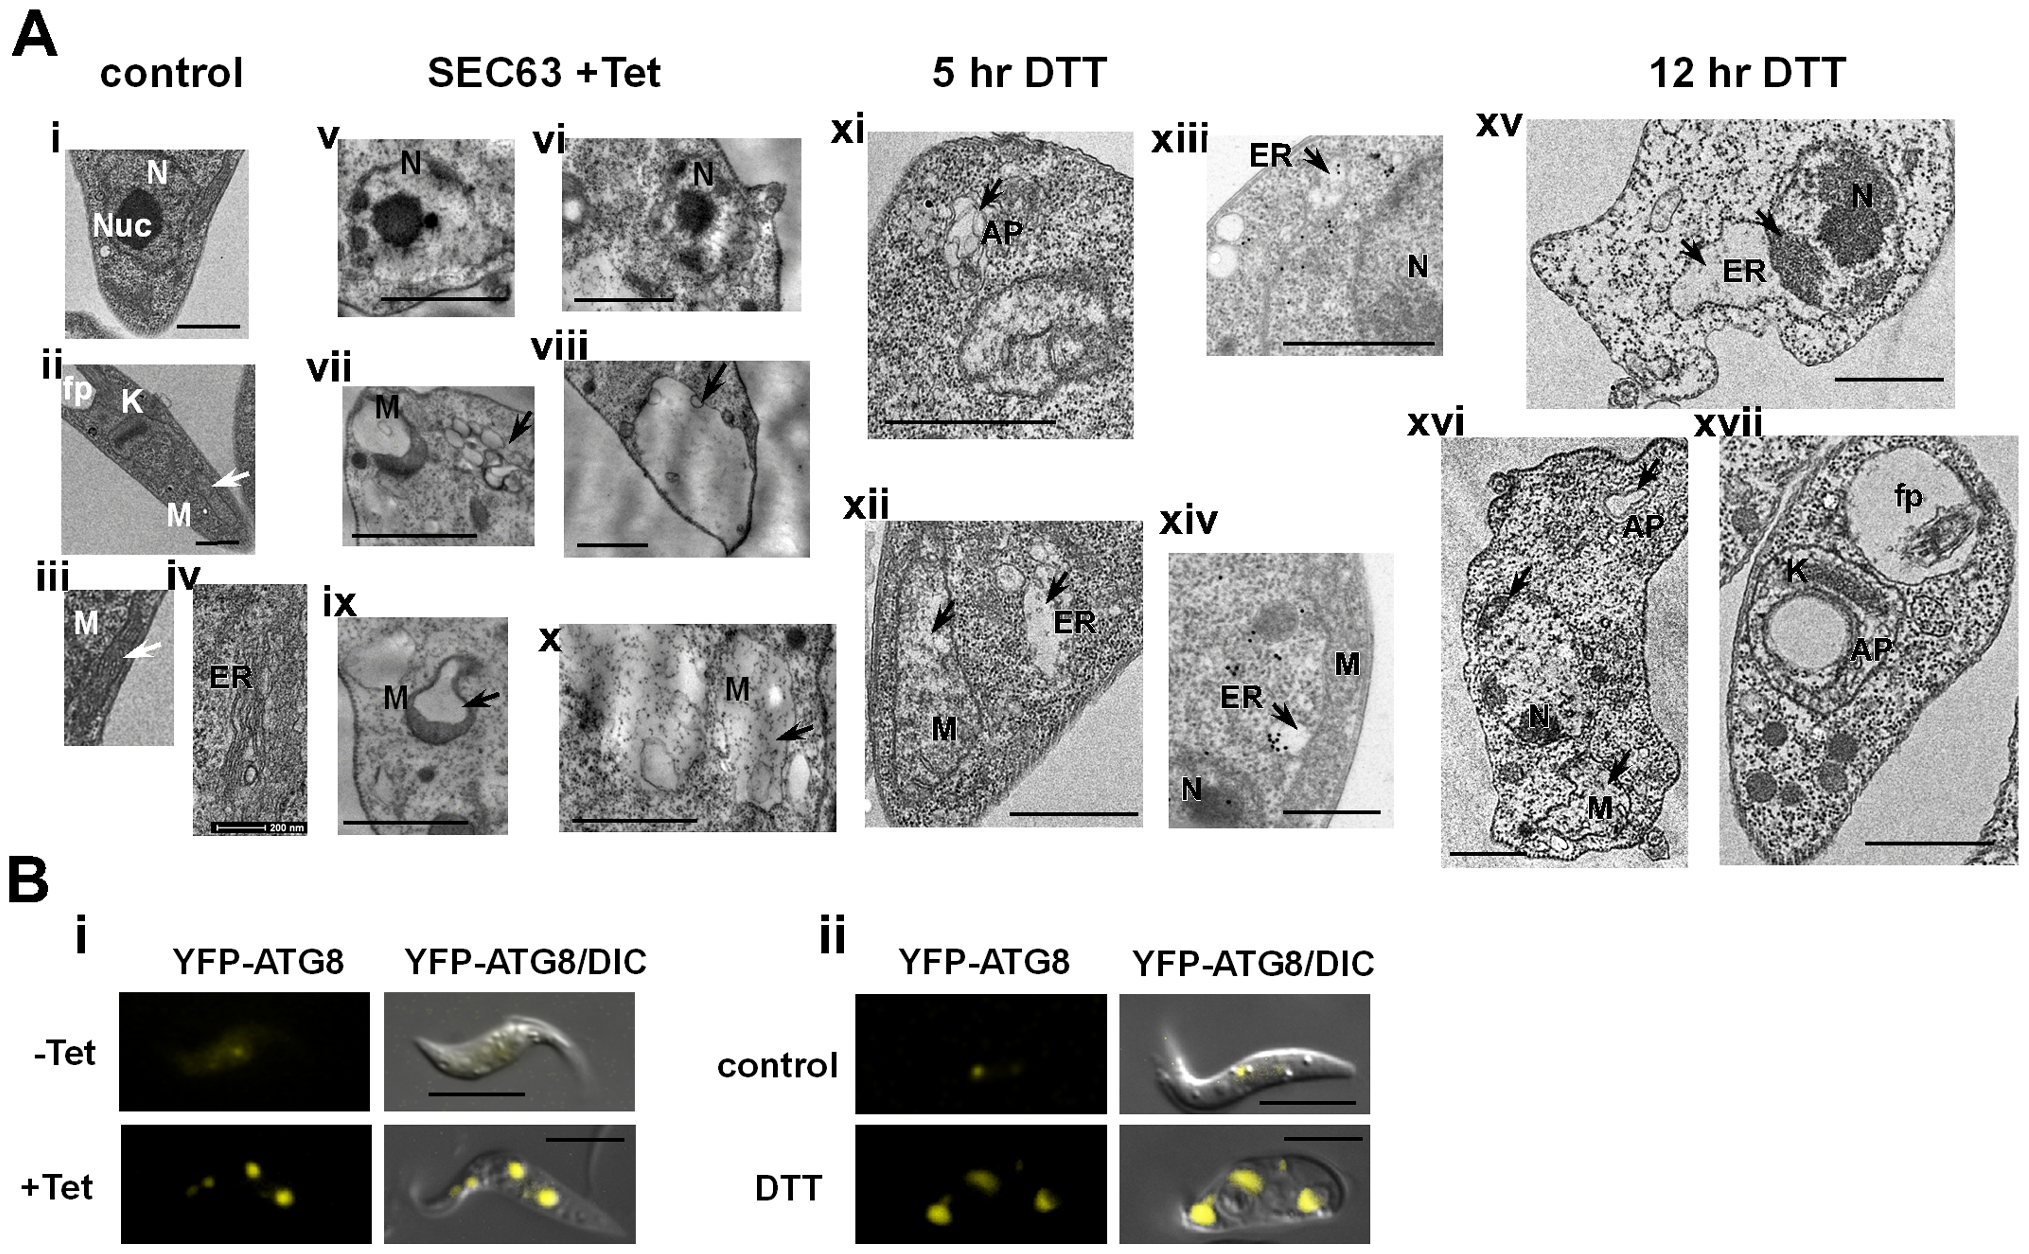 TEM of SLS-induced cells demonstrating morphological changes characteristic of apoptosis.